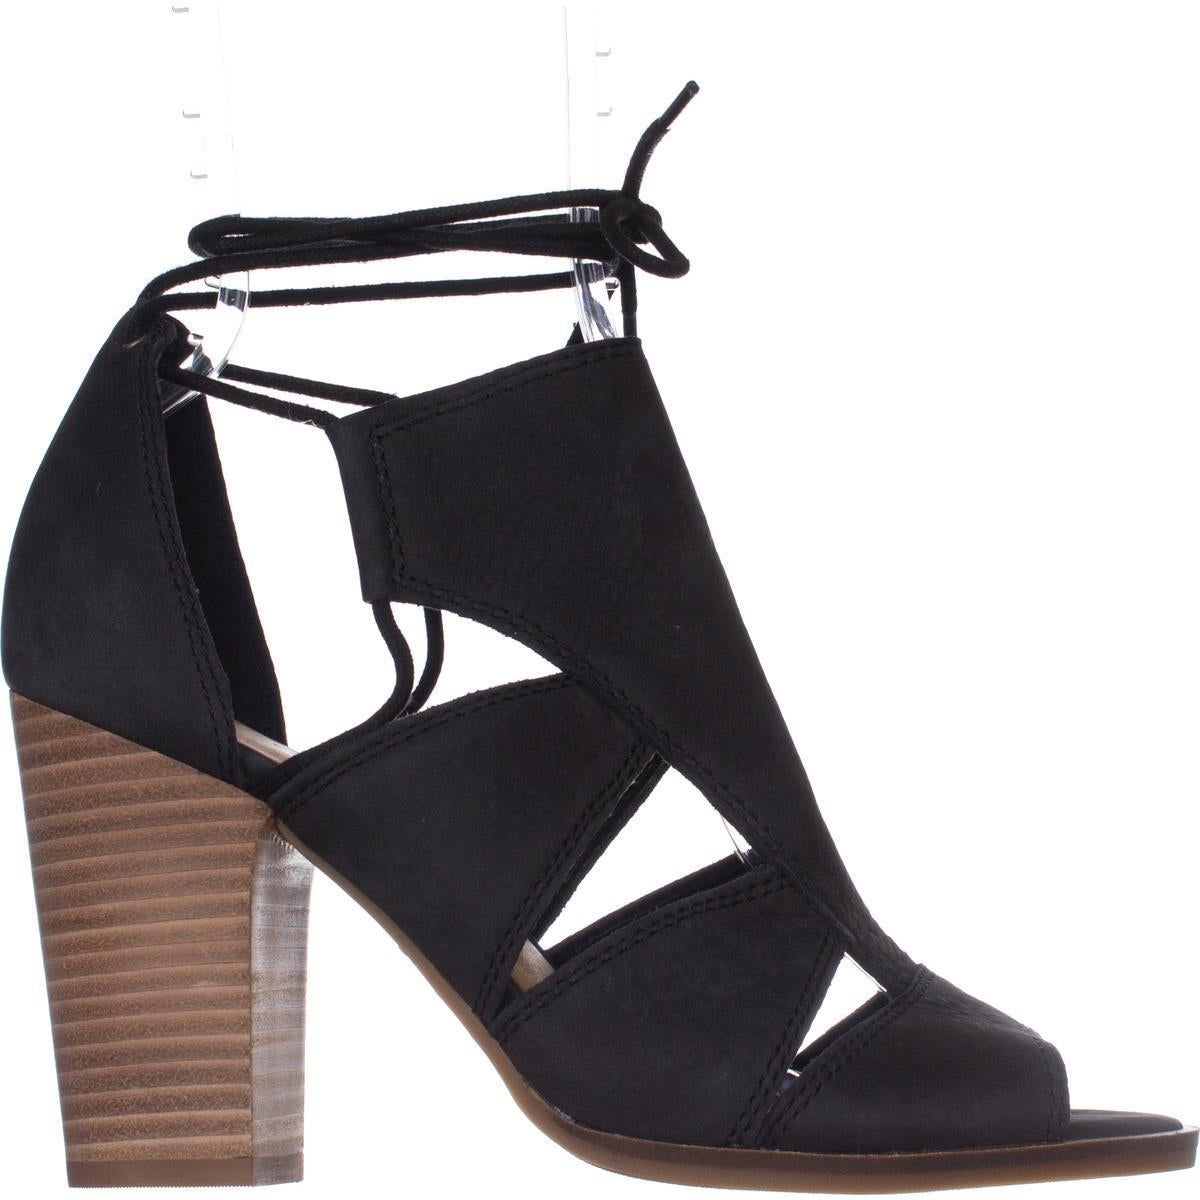 f83b7fec5b8 Shop Lucky Brand Lanita Block Heel Sandals